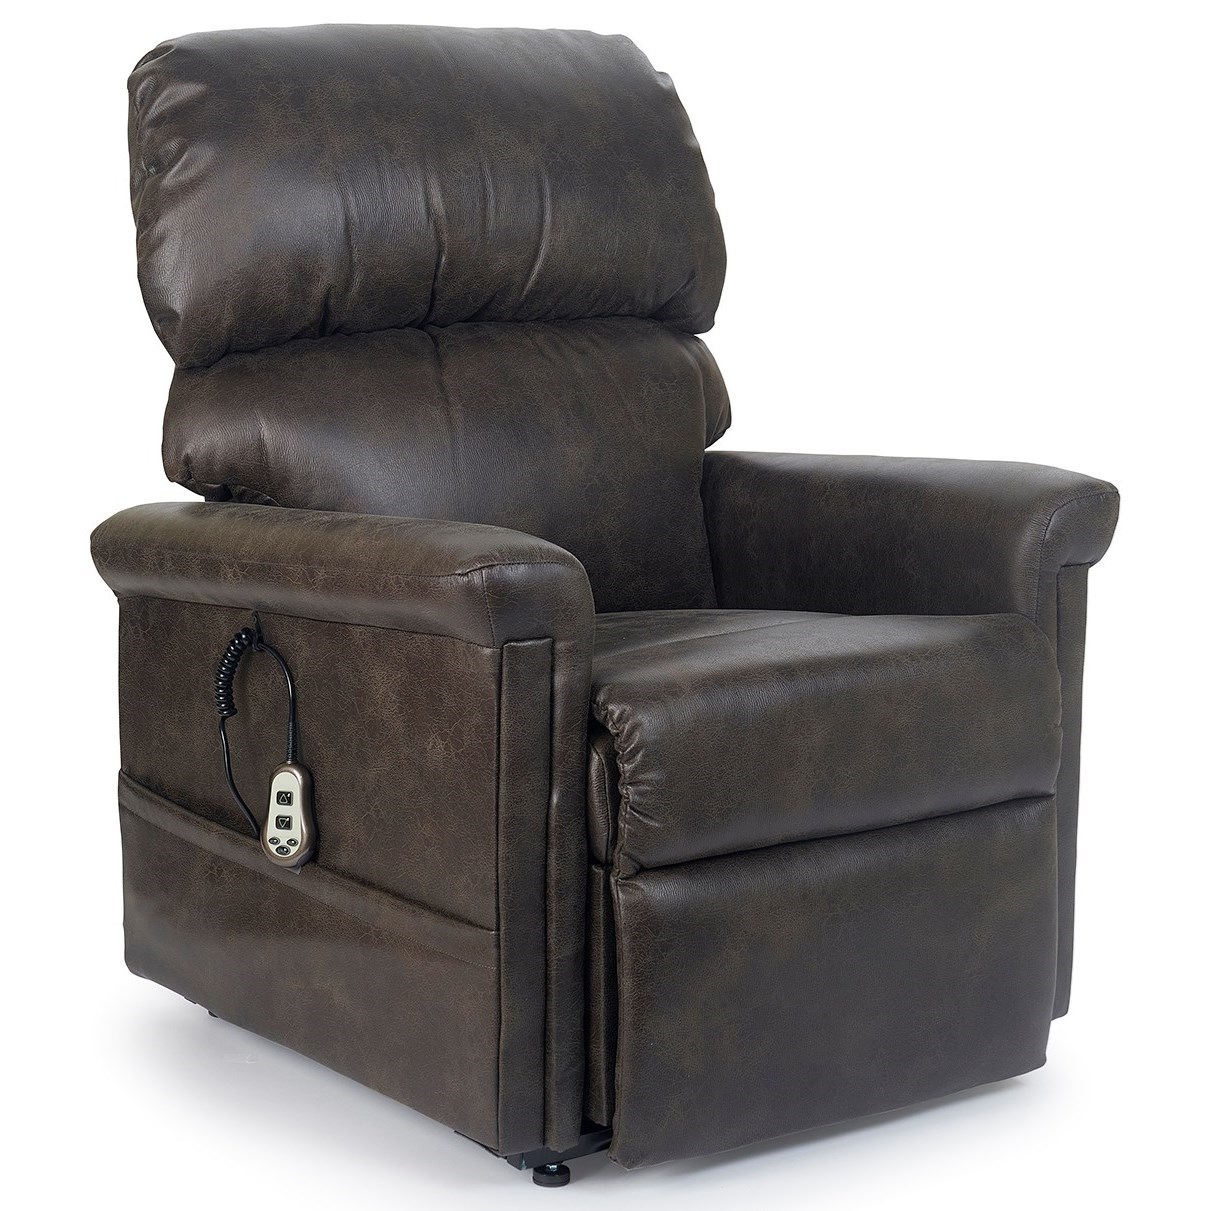 Explorer Austin Medium Lift Recliner by UltraComfort at Wilson's Furniture